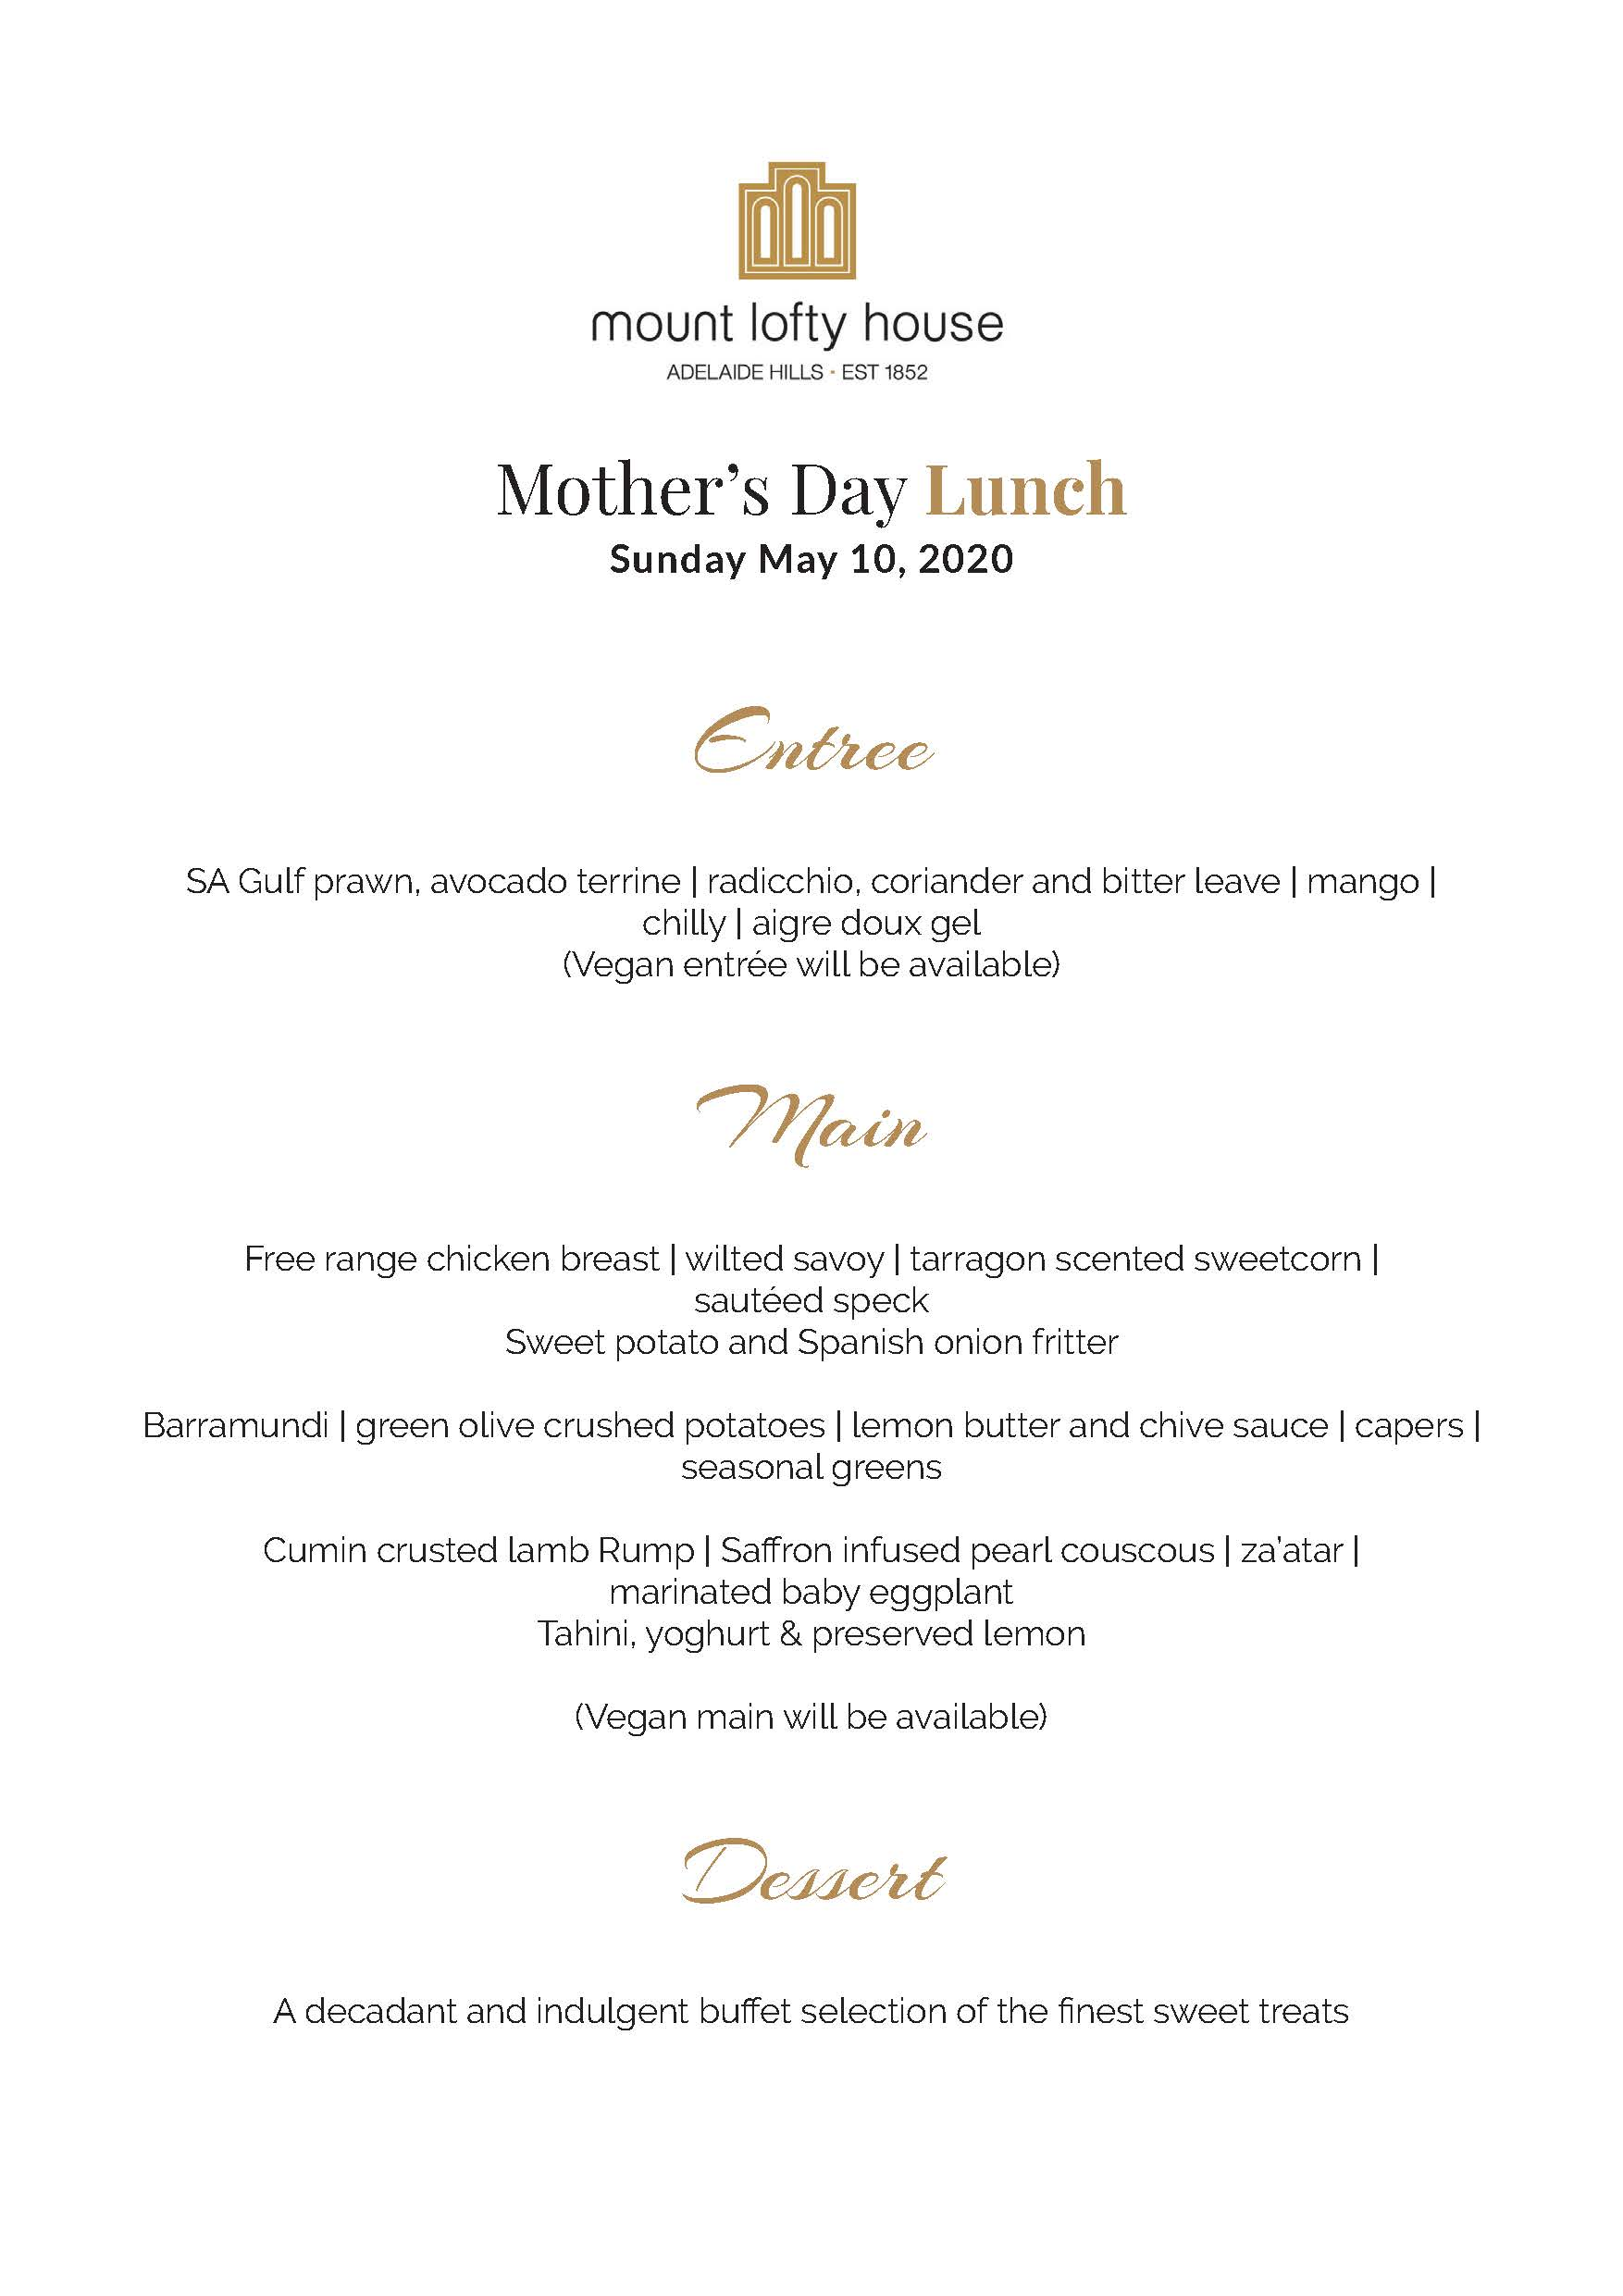 Mount Lofty House Mother's Day Lunch Menu 2020